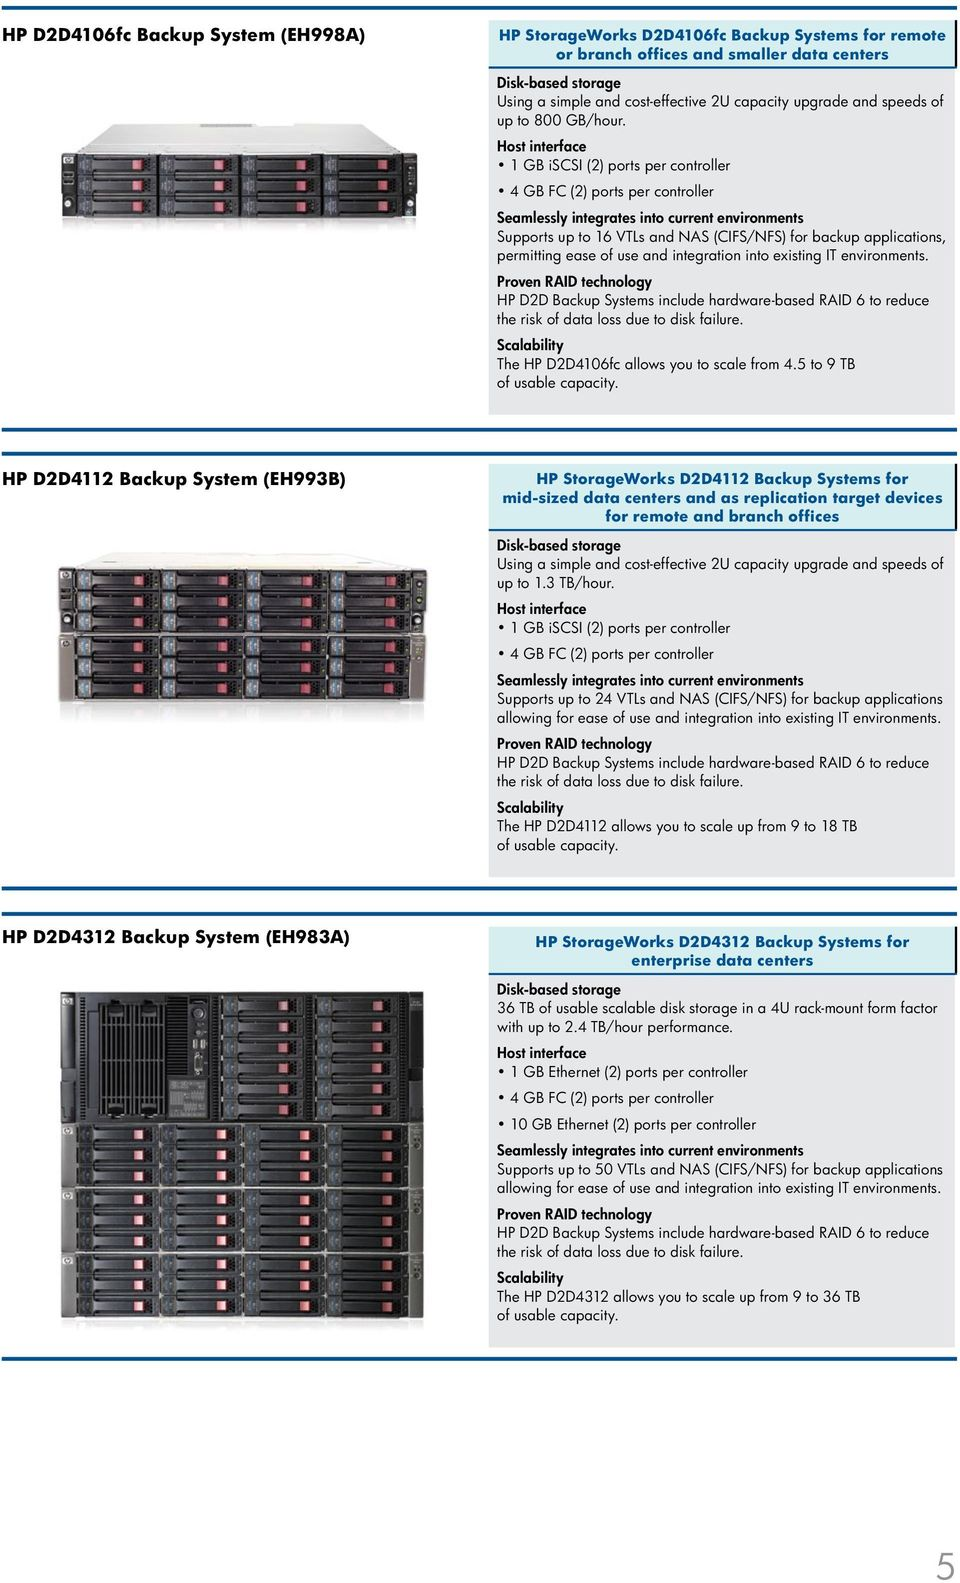 1 GB iscsi (2) ports per controller 4 GB (2) ports per controller Supports up to 16 VTLs and NAS (CIFS/NFS) for backup applications, permitting ease of use and integration into existing IT